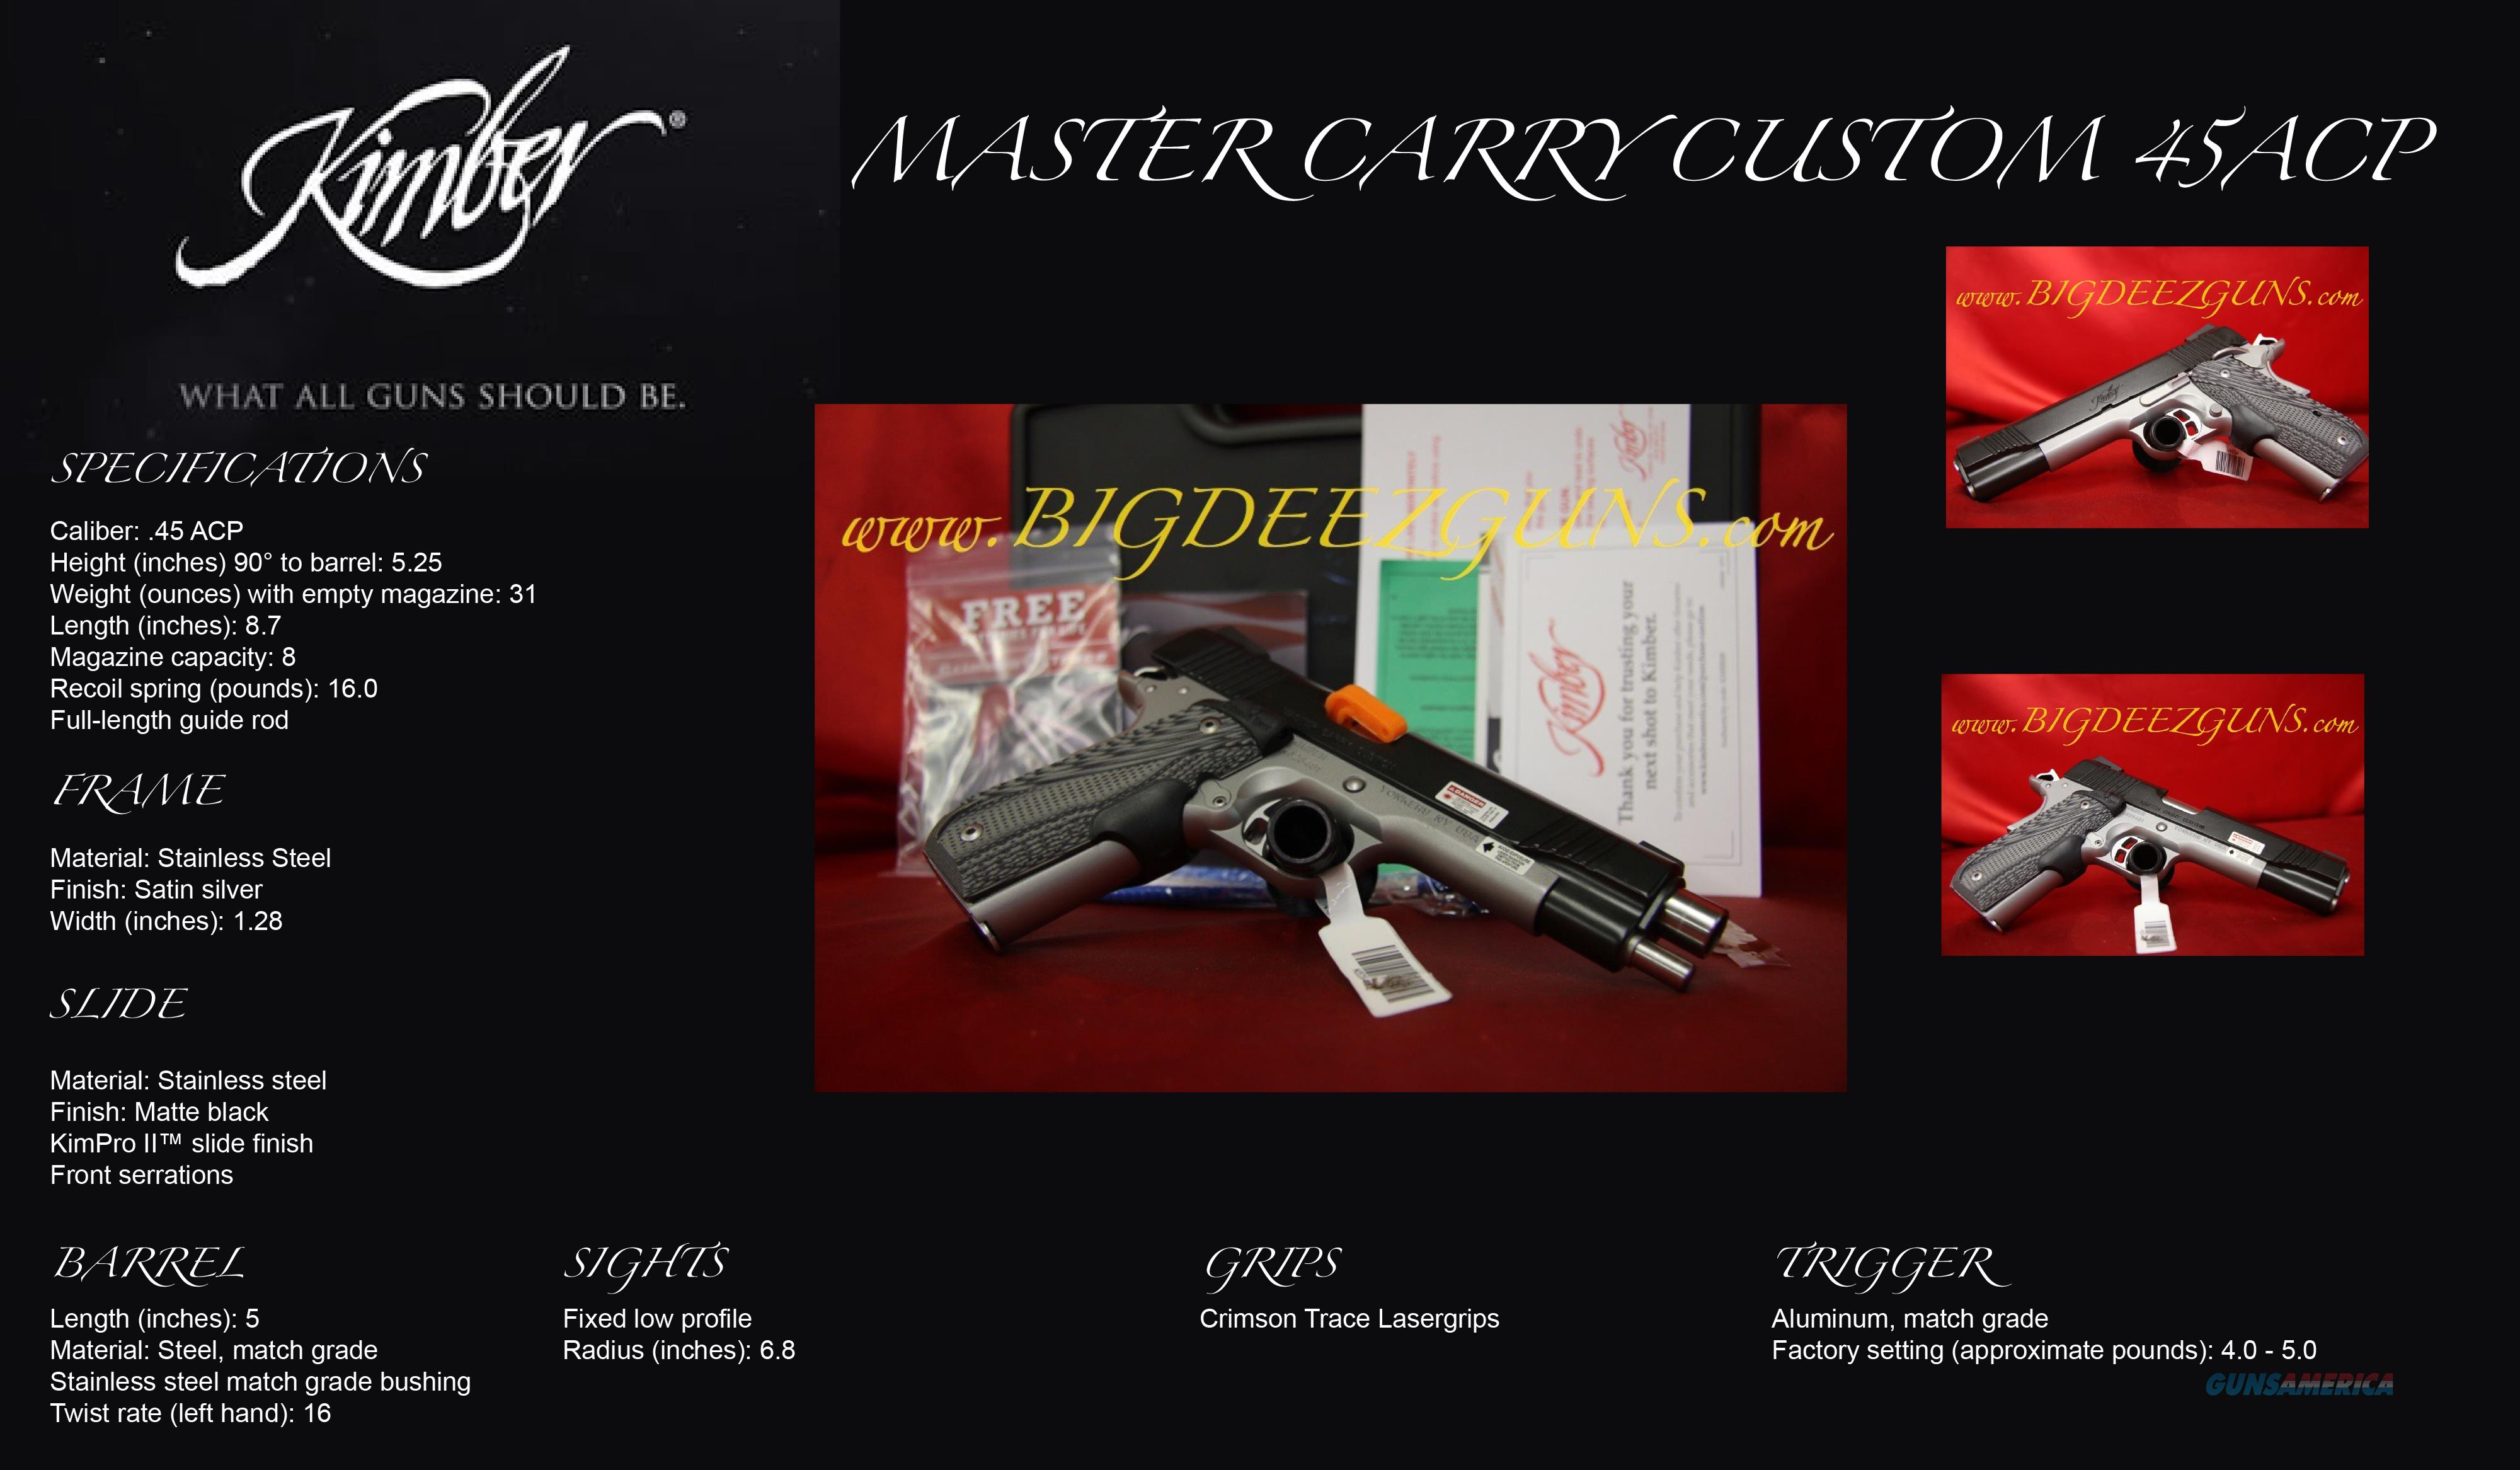 Kimber MASTER CARRY CUSTOM LASER GRIP 1911 45ACP  Guns > Pistols > Kimber of America Pistols > 1911